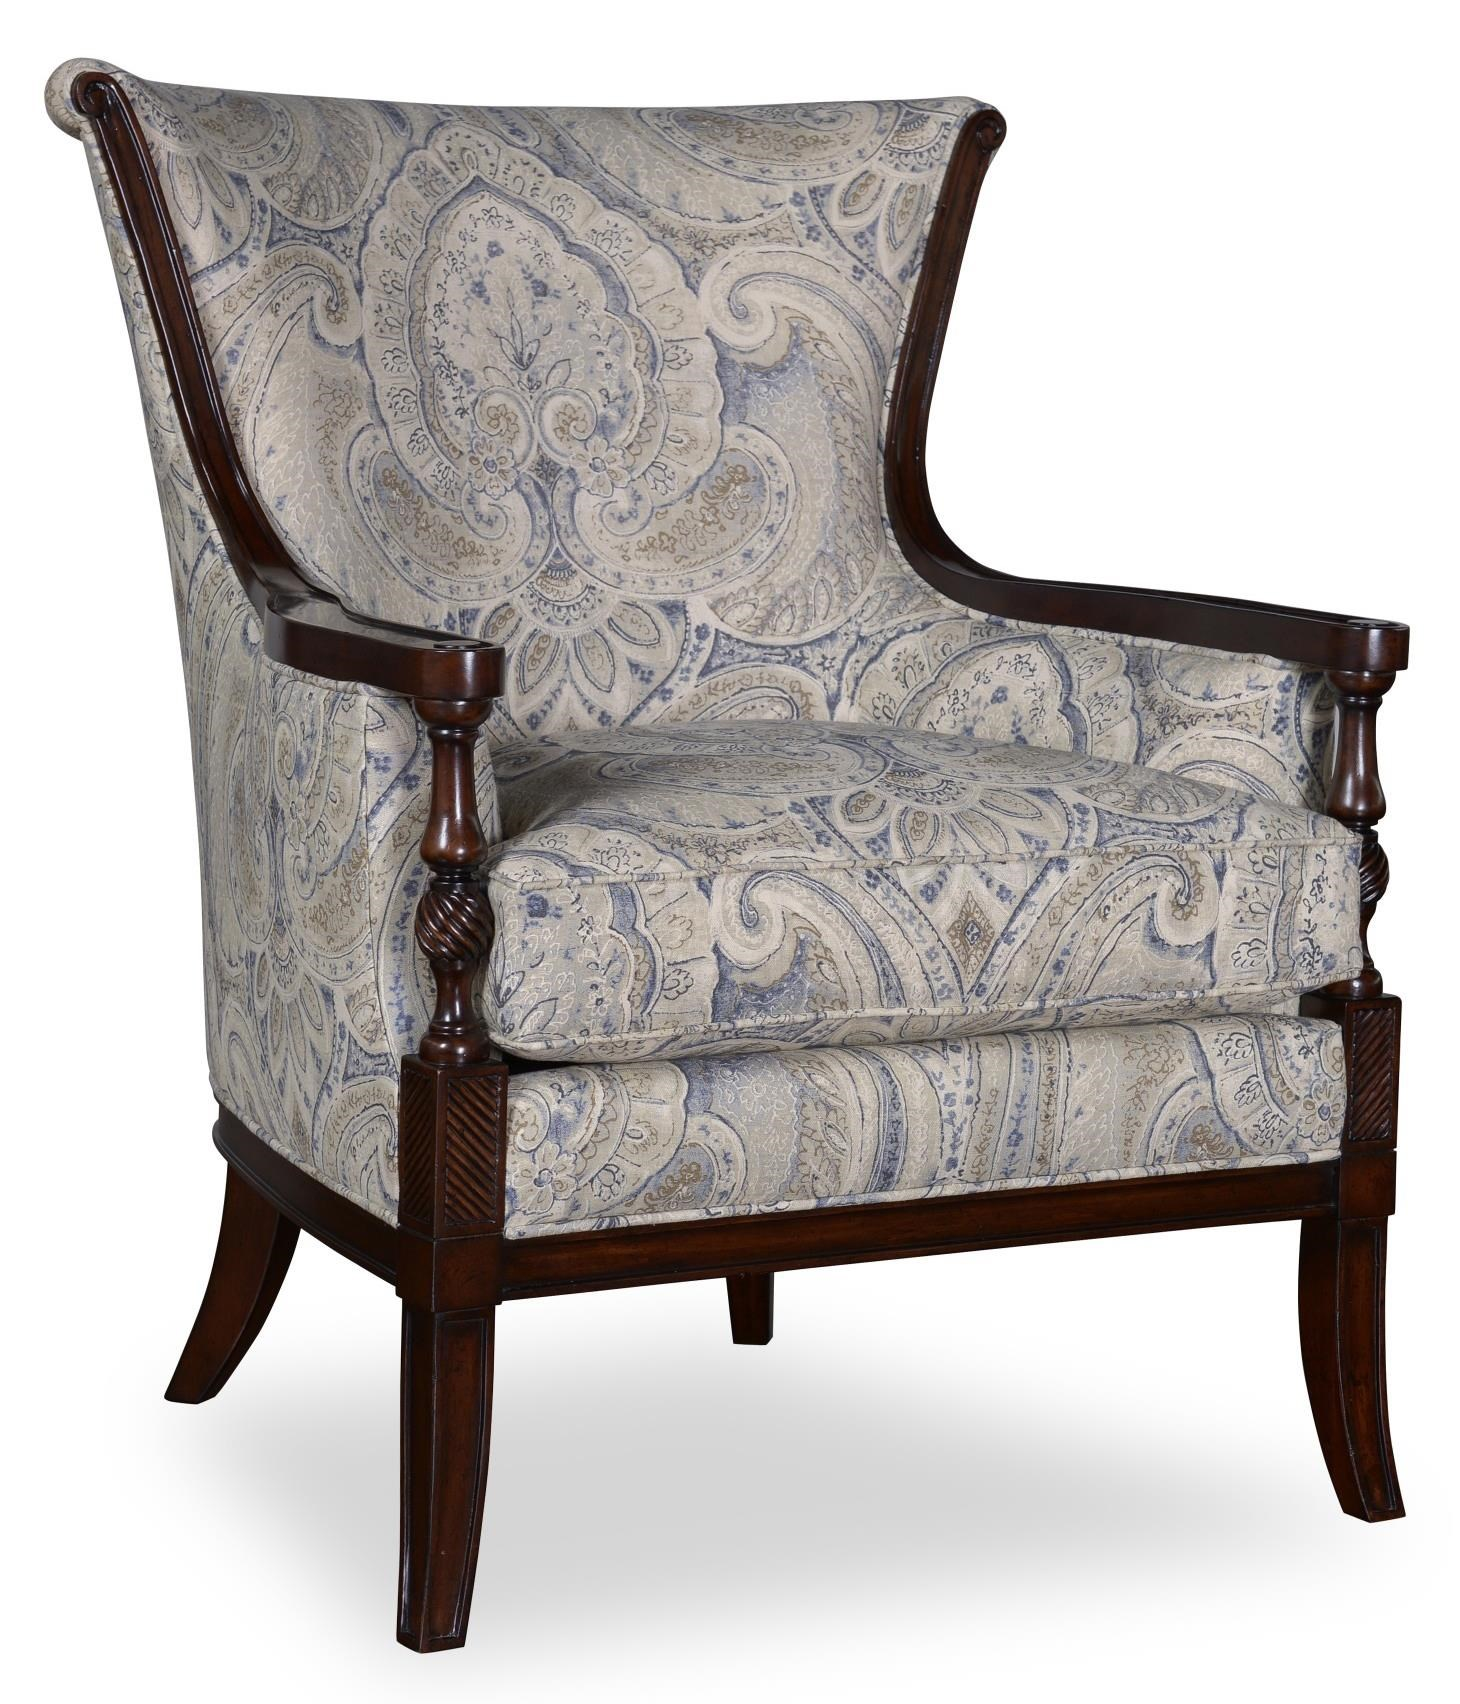 Markor Furniture Bristol Traditional Carved Wood Accent Chair In Tapestry  Fabric